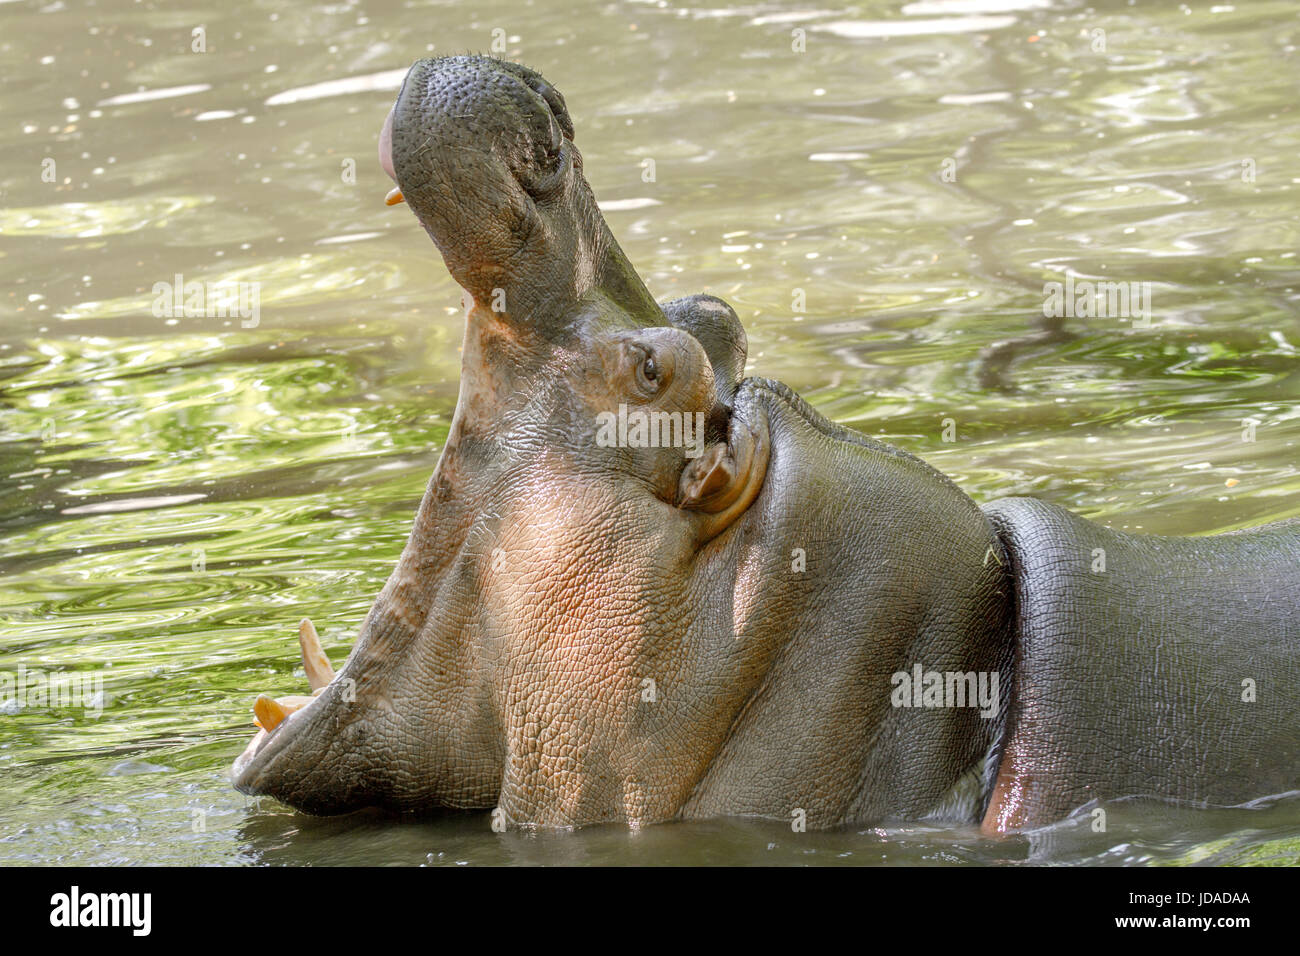 Image of a large animal hippopotamus in the water opened its mouth - Stock Image